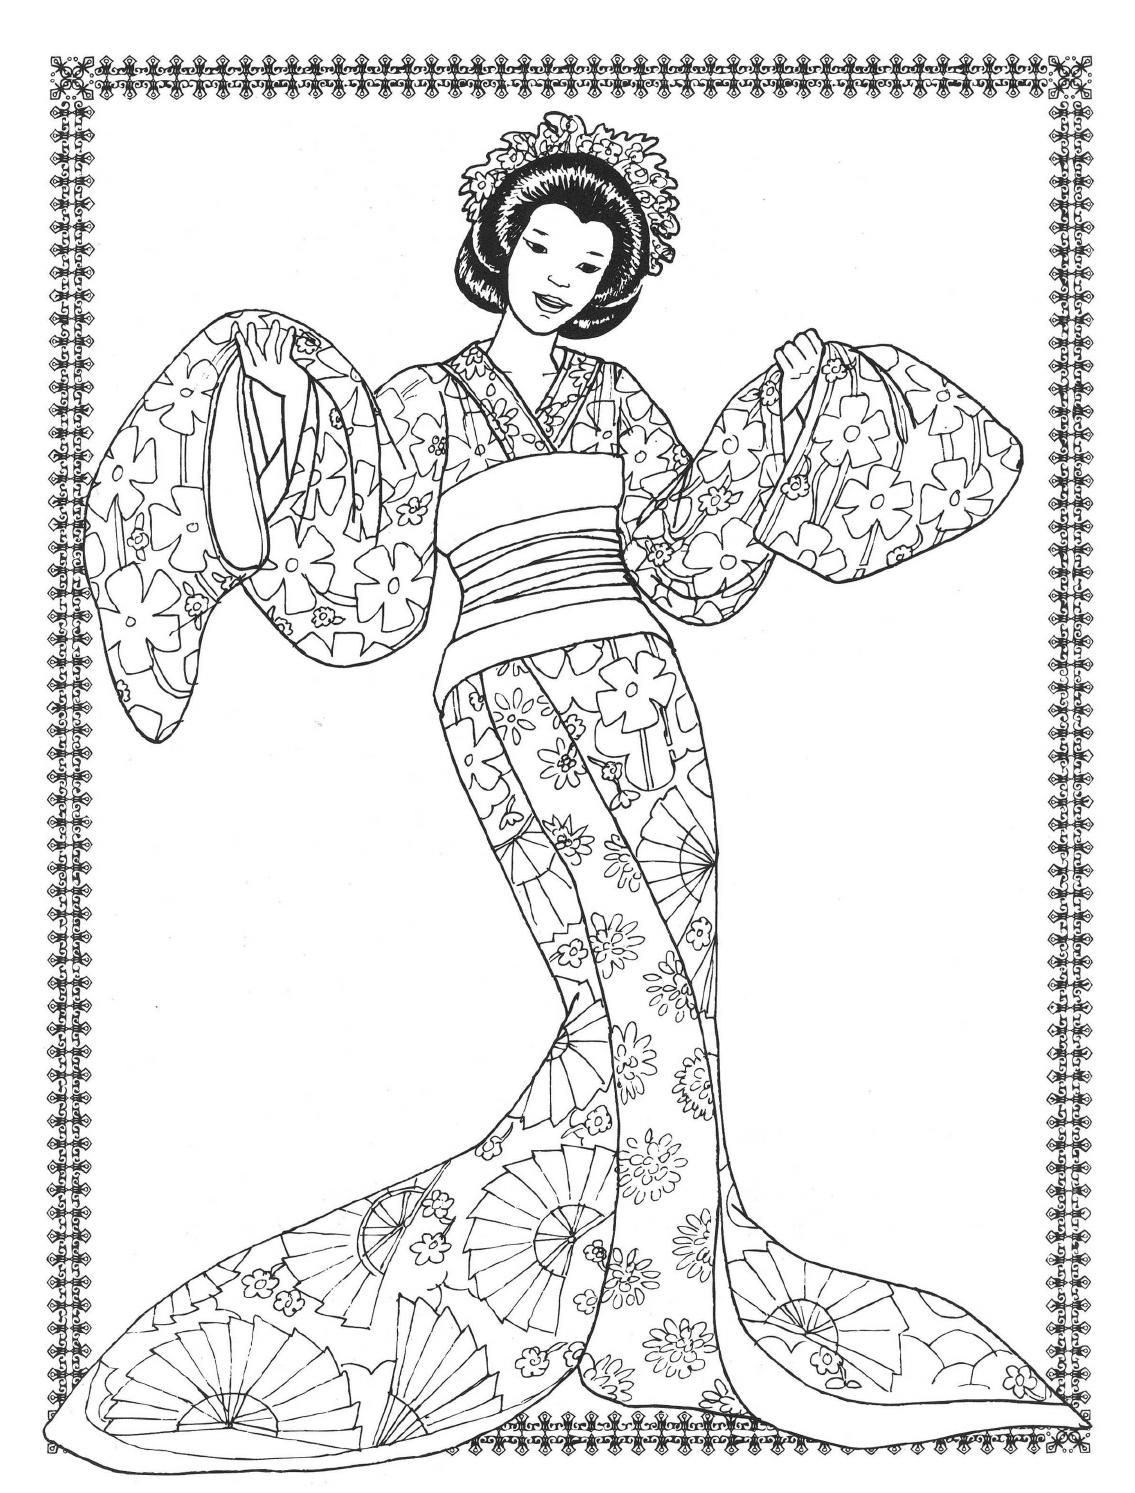 Dancers Coloring Book Costumes For Coloring Coloring Pages To Print